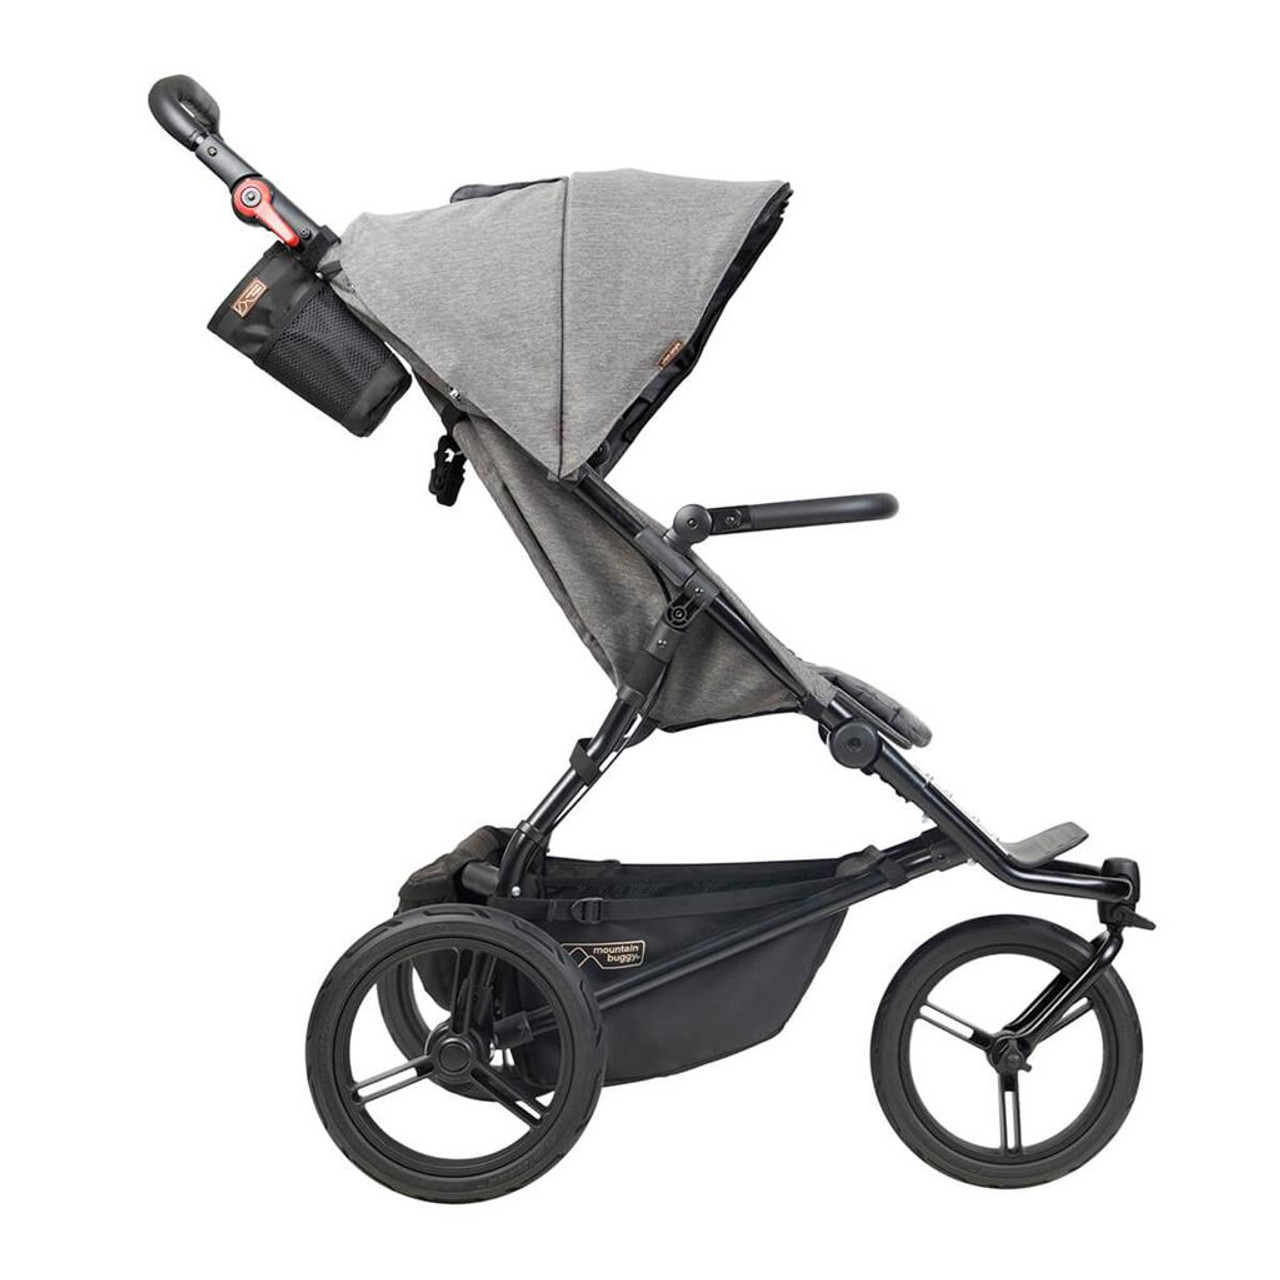 Mountain Buggy Urban Jungle Luxury Collection Herringbone | Baby Barn Discounts Mountain Buggy luxury delivers refined aesthetics of hand-stitched leather accents.